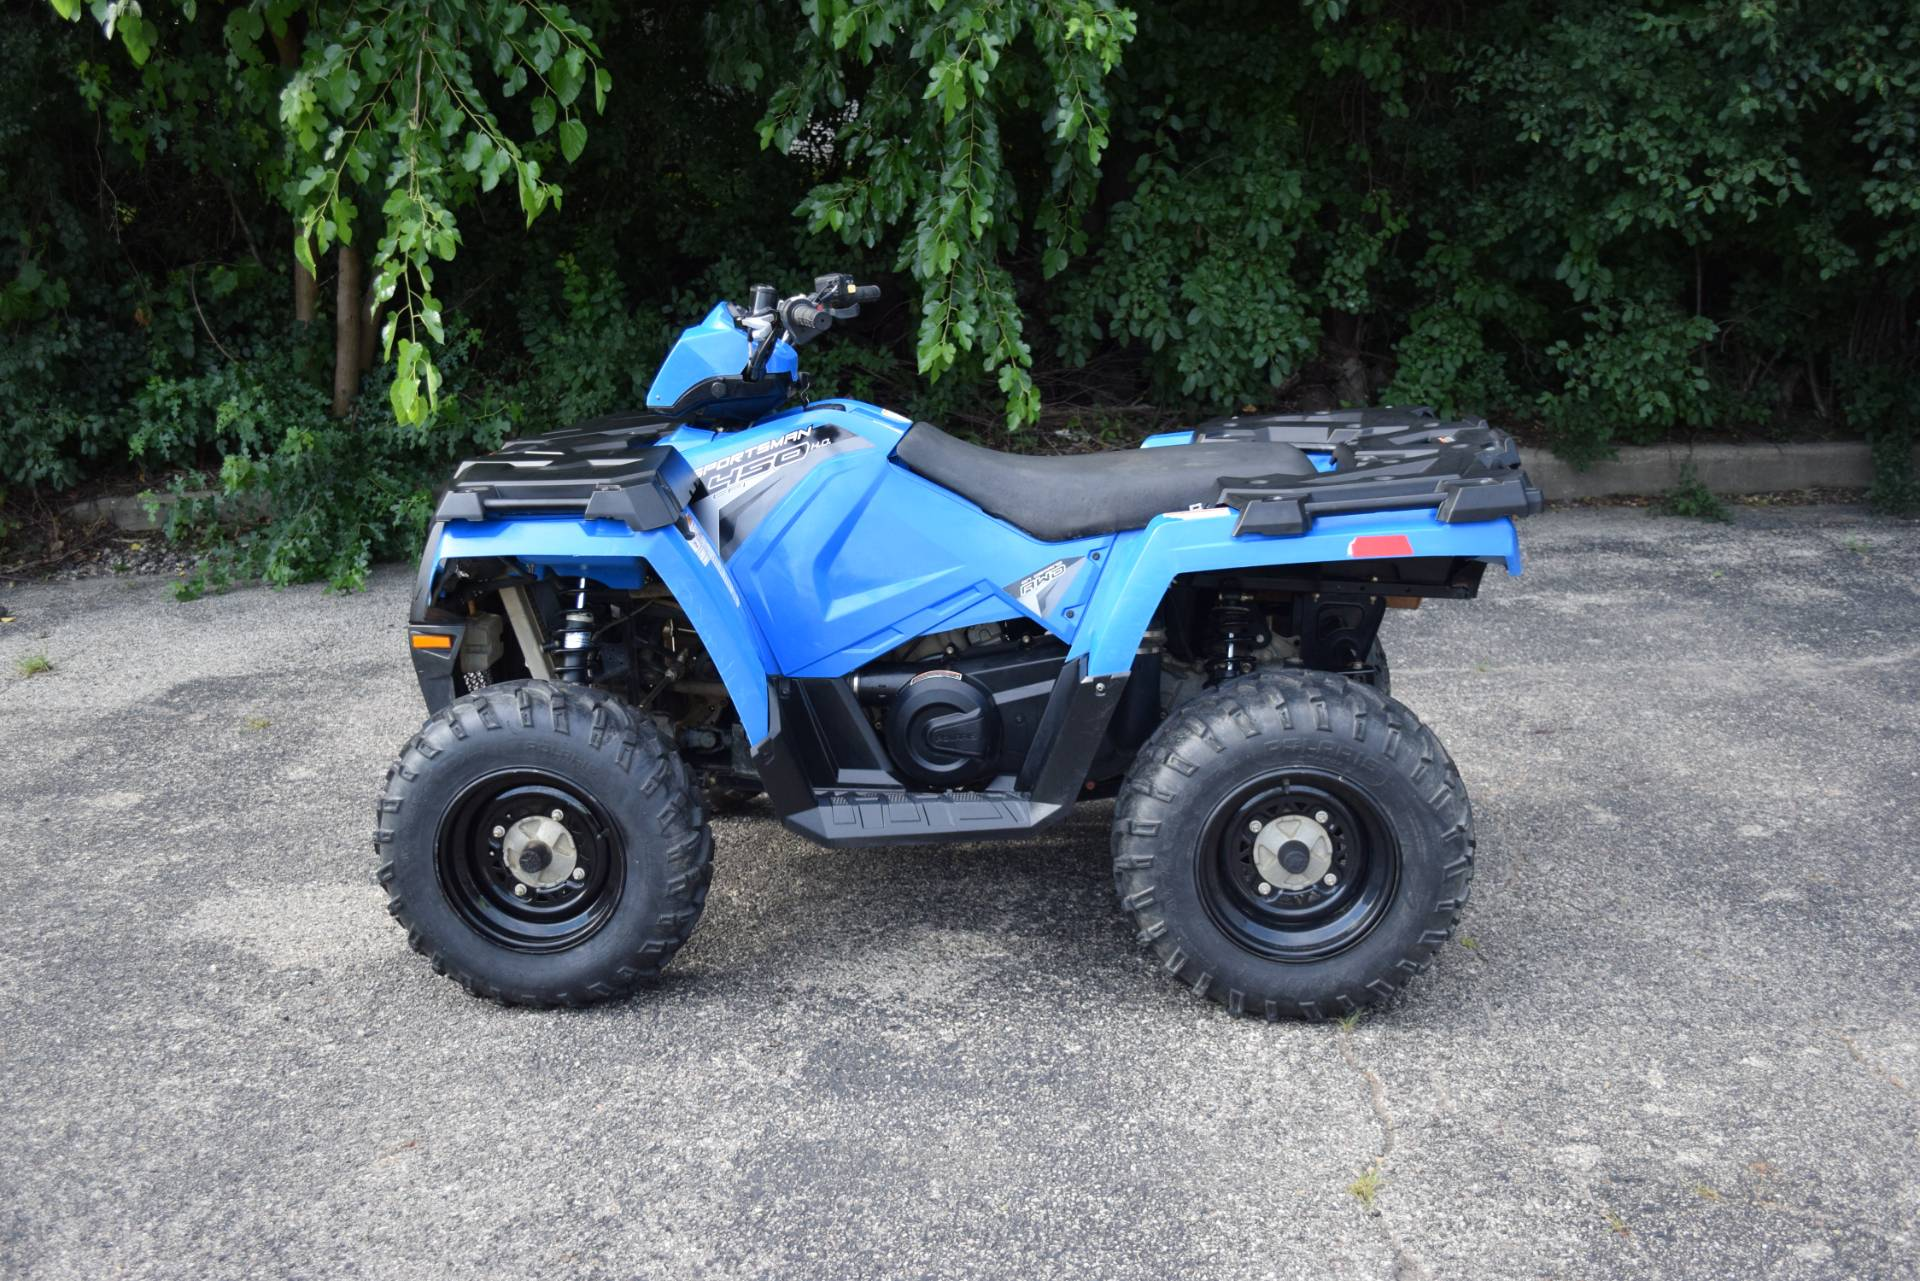 2017 Polaris Sportsman 450 H.O. in Wauconda, Illinois - Photo 16